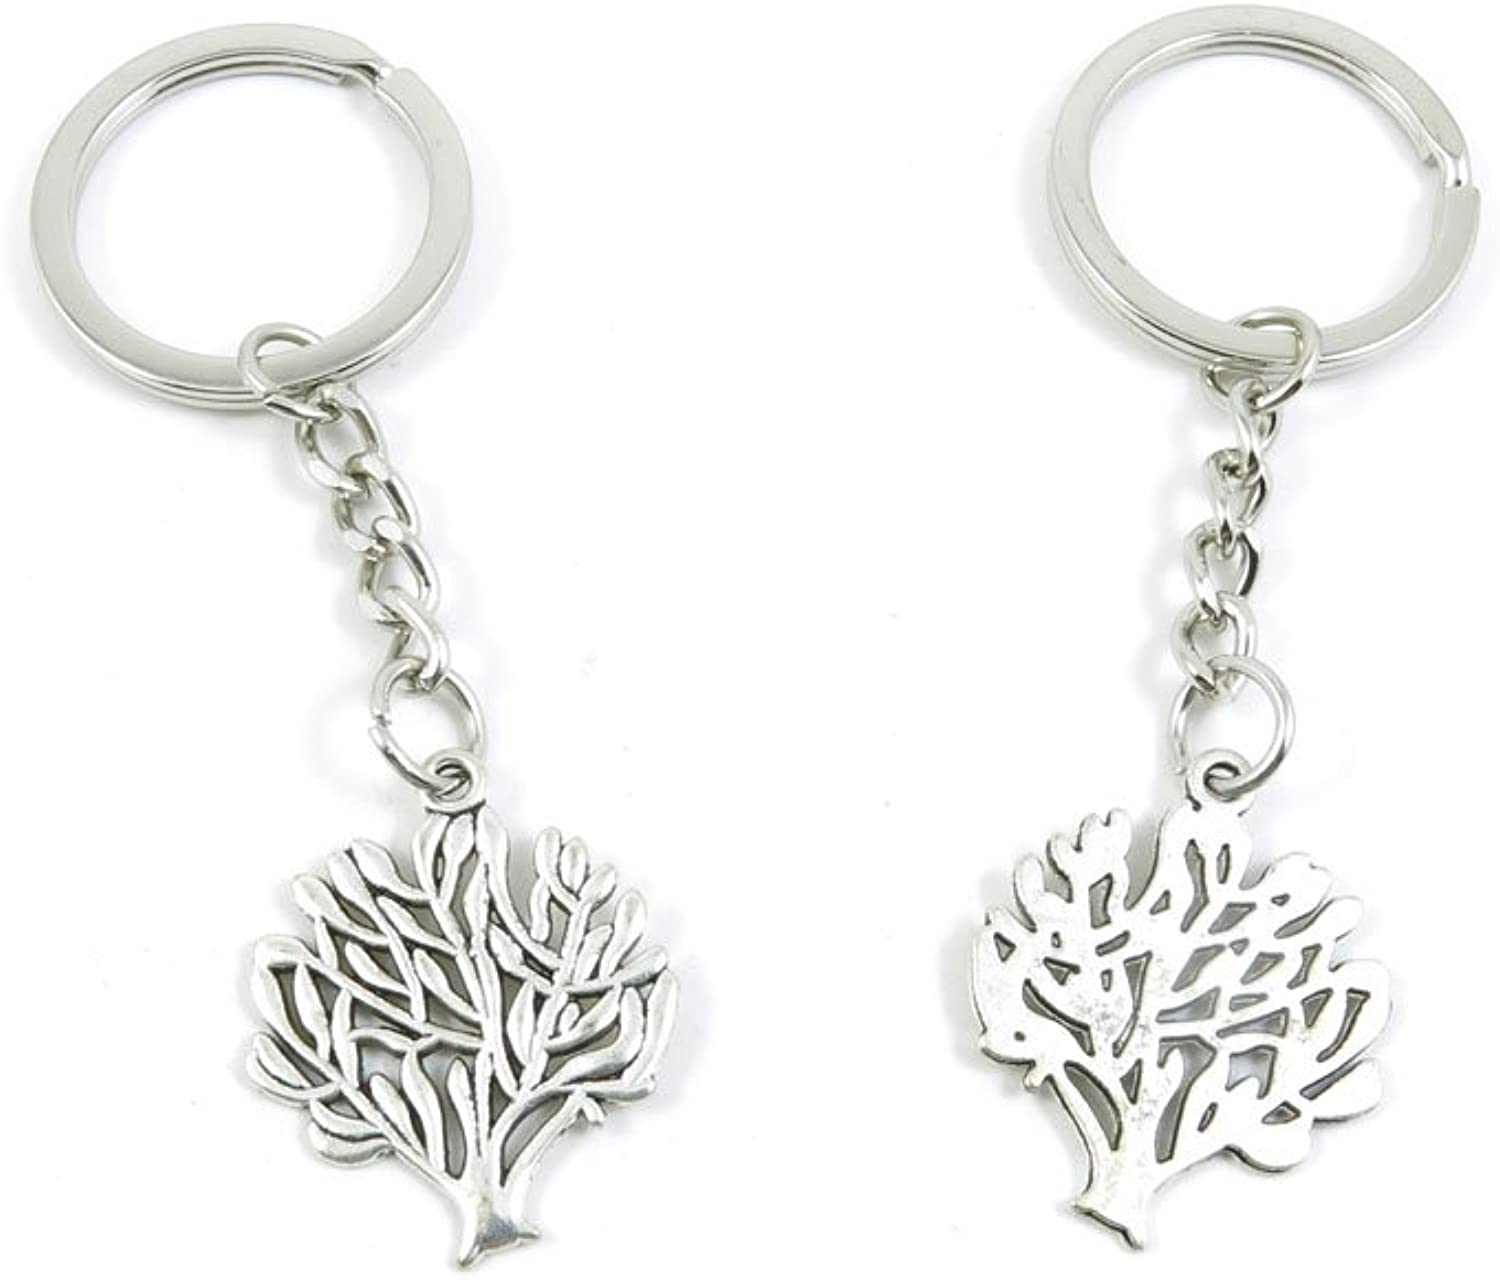 190 Pieces Fashion Jewelry Keyring Keychain Door Car Key Tag Ring Chain Supplier Supply Wholesale Bulk Lots N5NW0 Life String Tree Oak